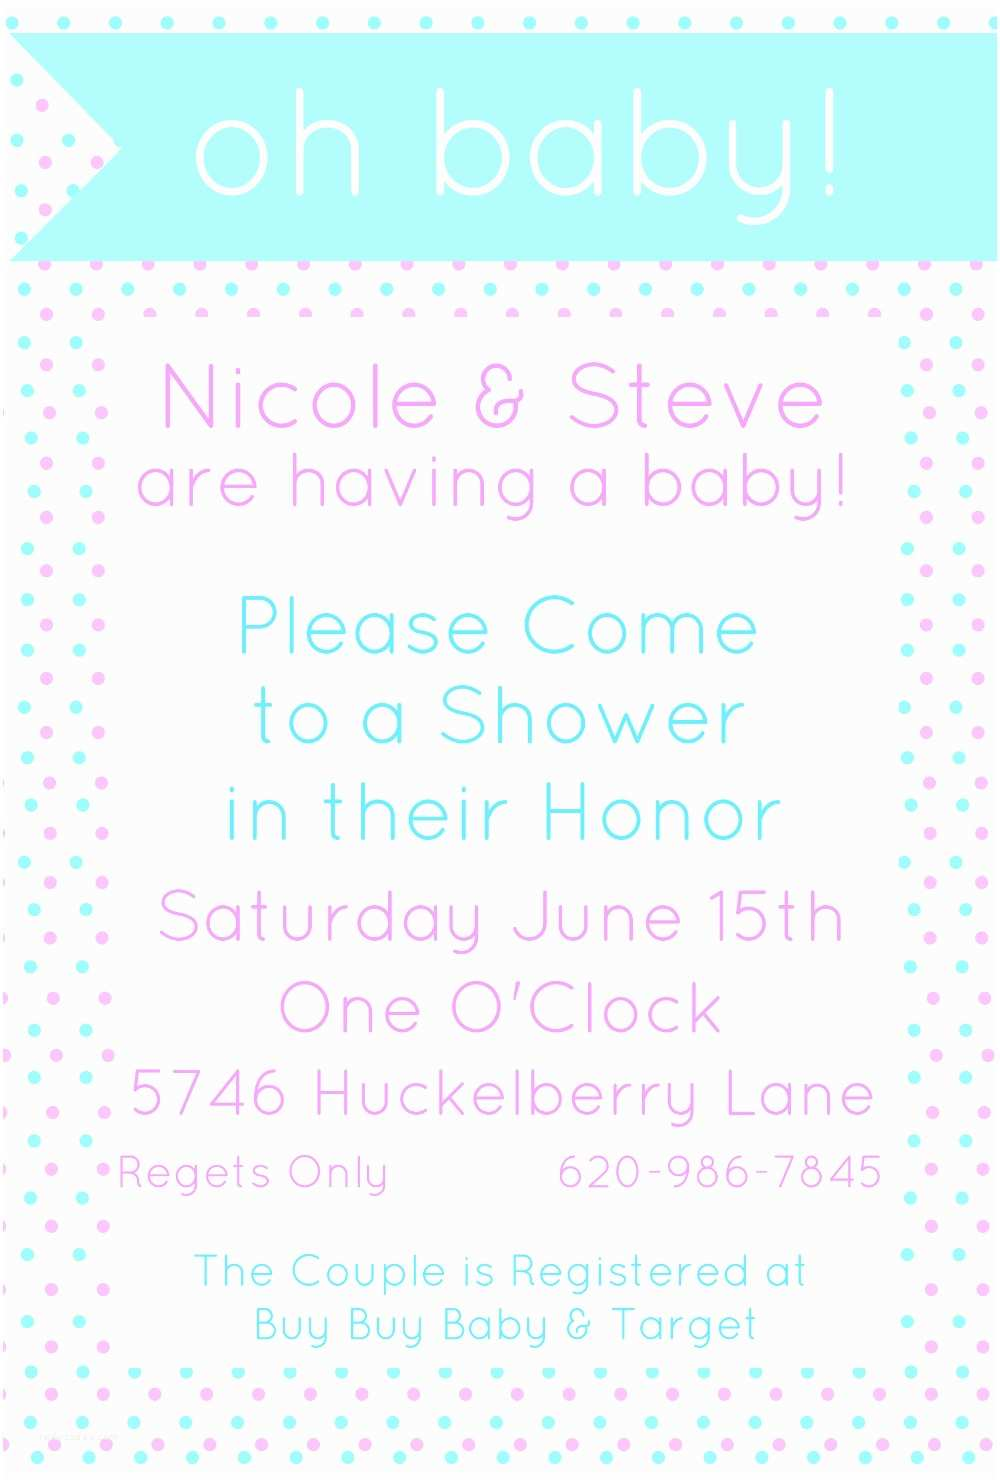 Diy Baby Shower Invitations Diy Invitations Using Picmonkey A Tutorial Wine